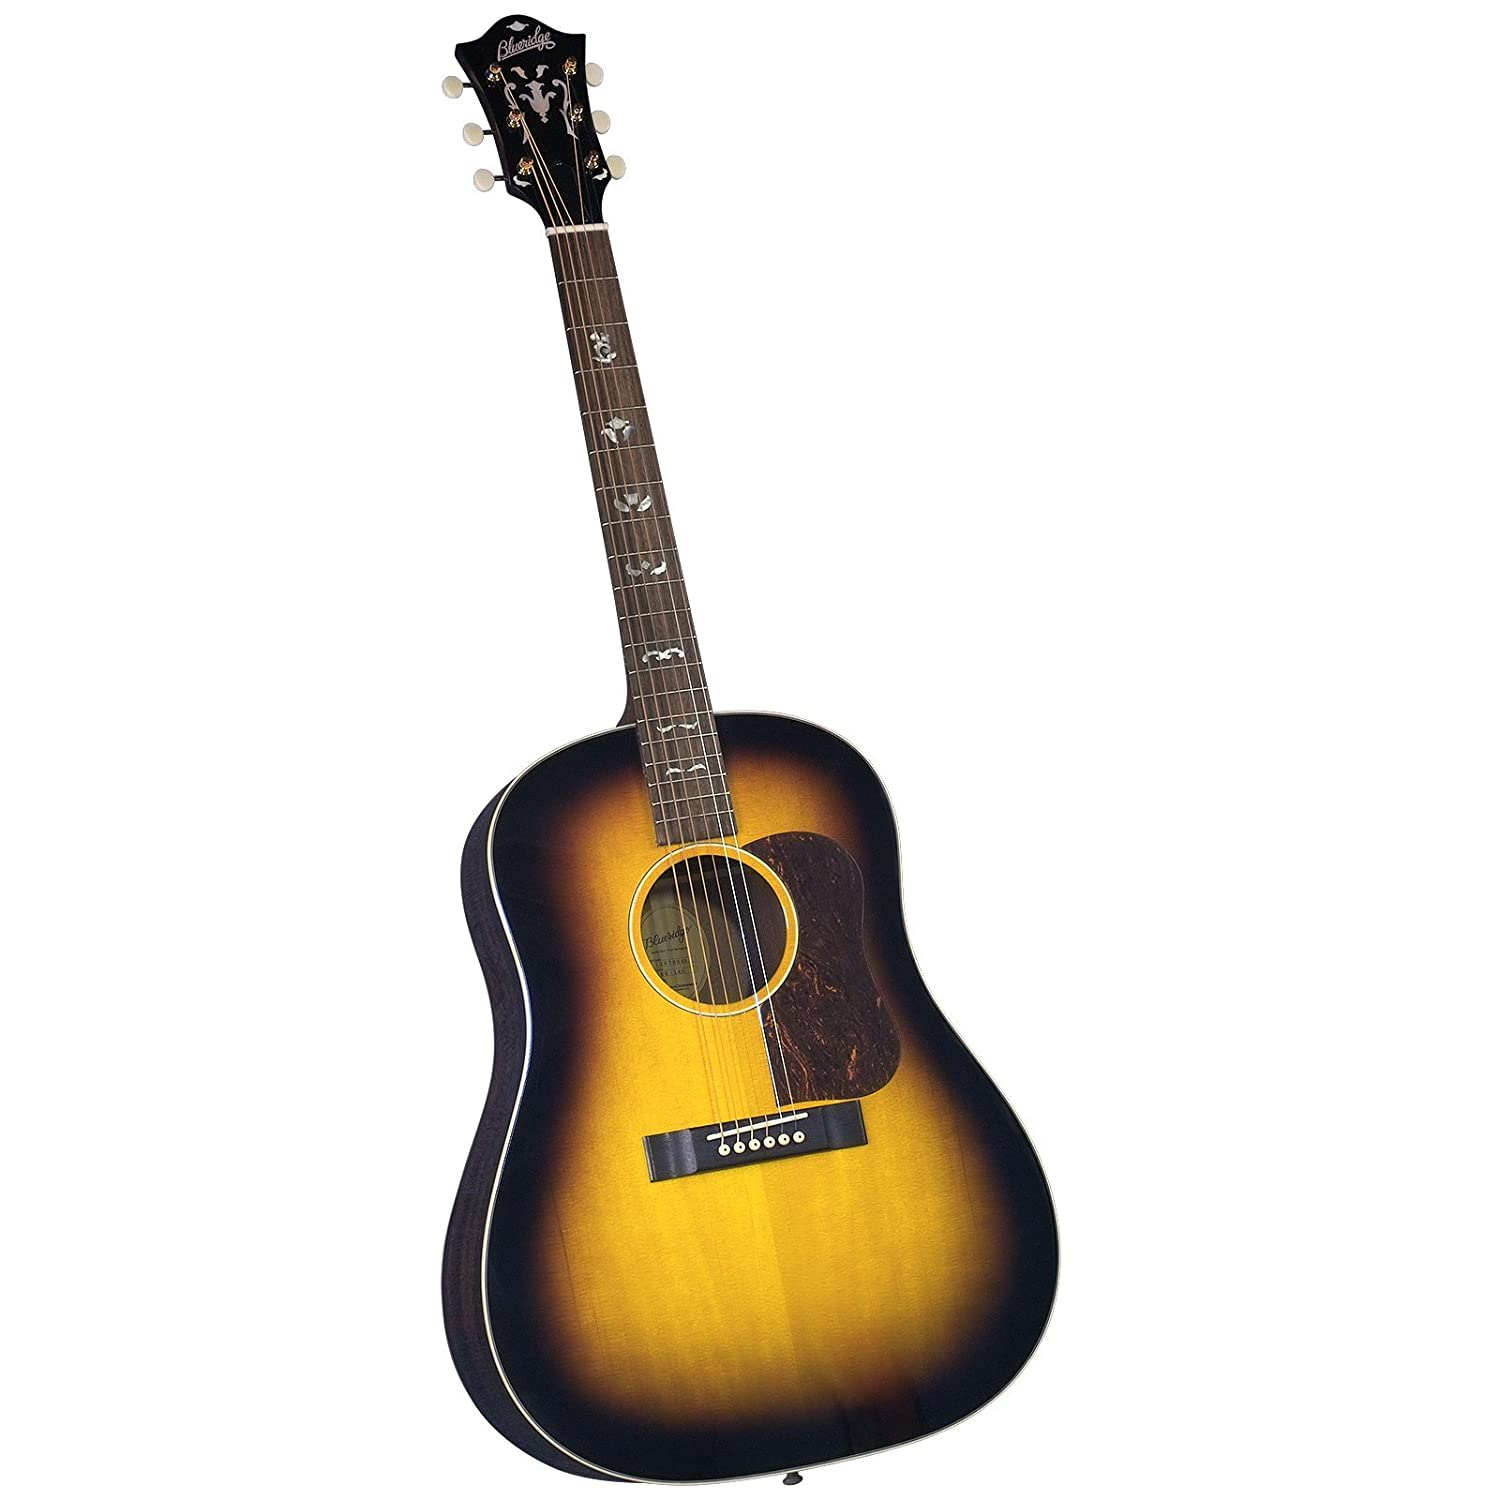 blueridge bg 140 historic series slope shoulder dreadnaught guitar